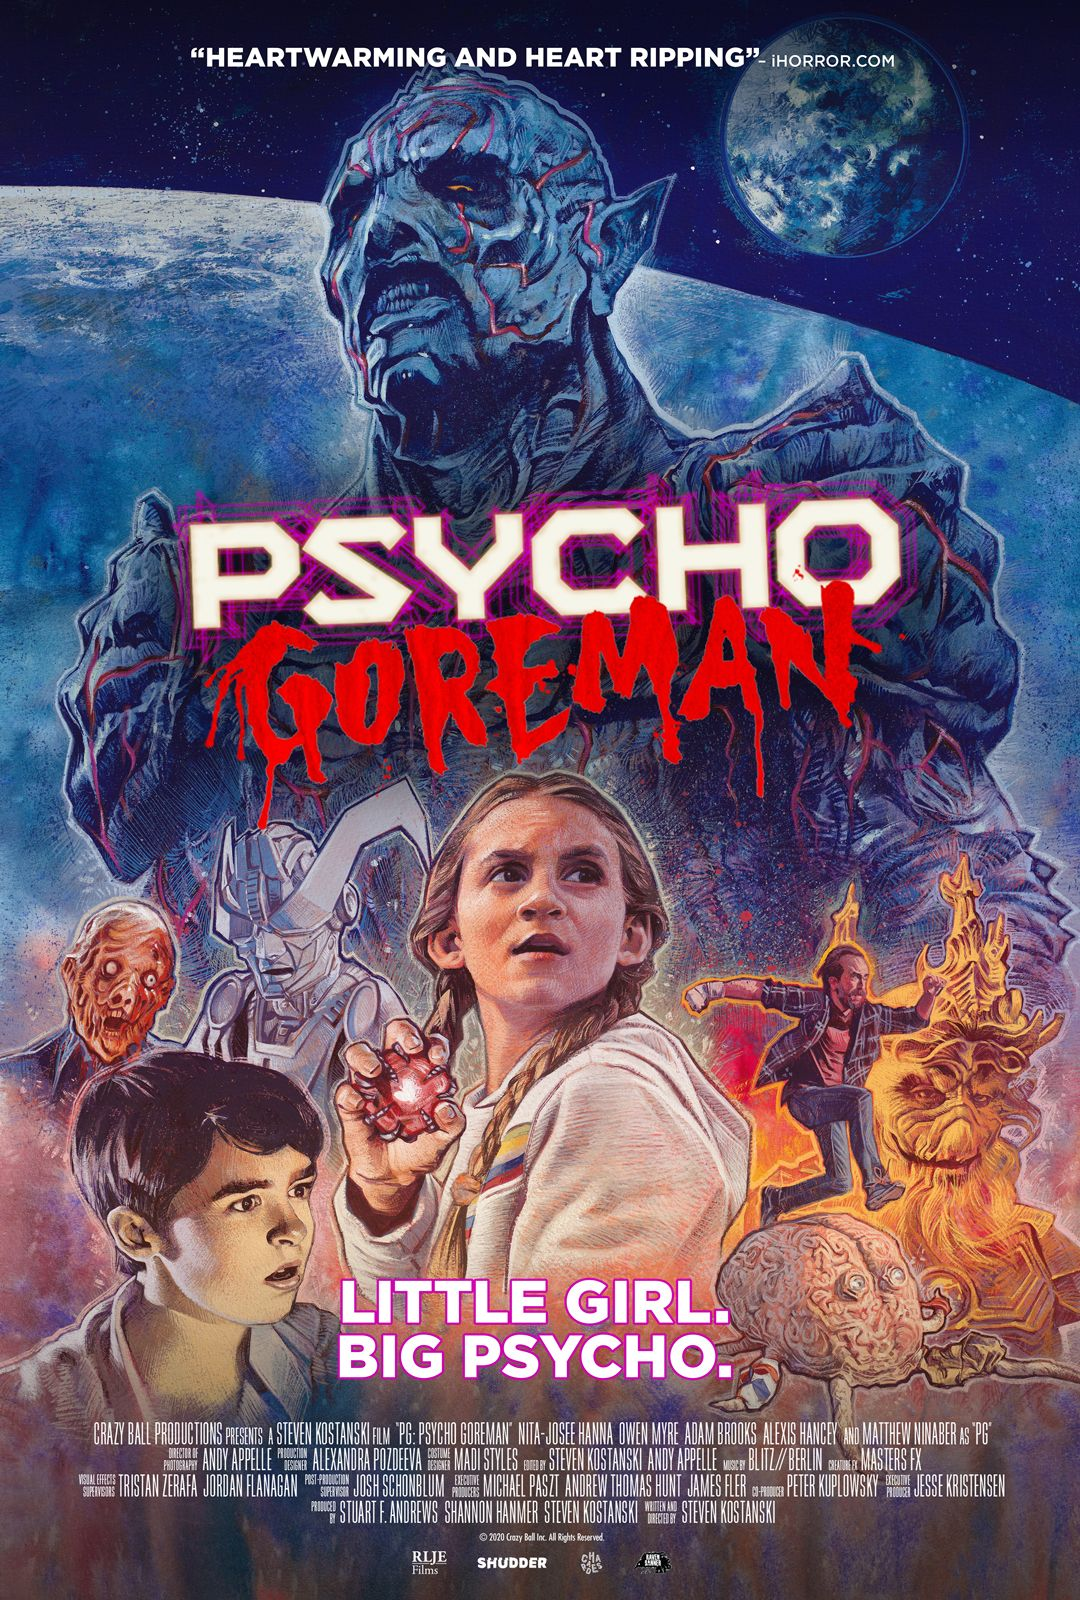 Psycho Goreman (2020) Bengali Dubbed (Voice Over) WEBRip 720p [Full Movie] 1XBET